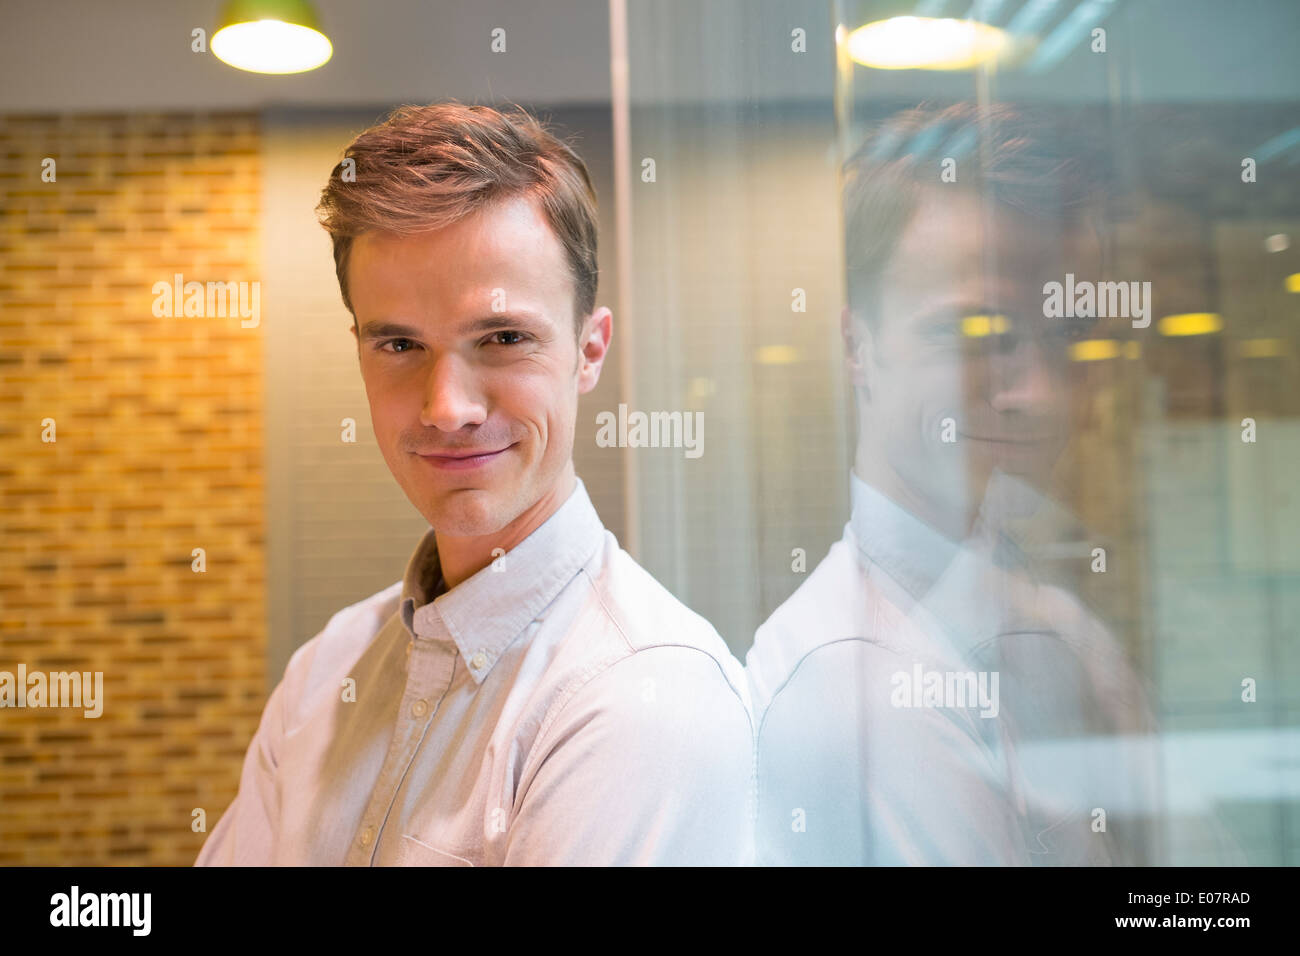 Male business startup looking camera student - Stock Image